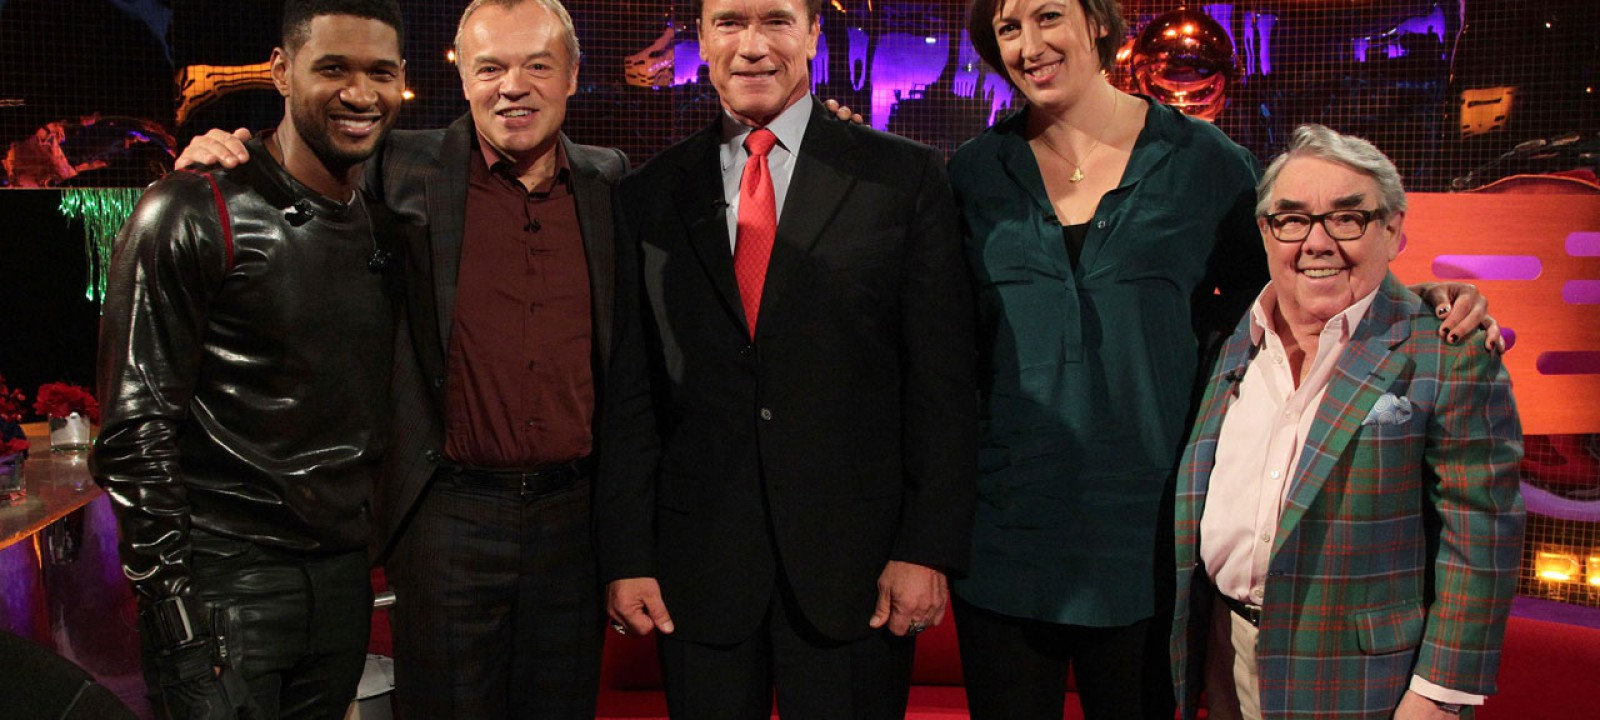 grahamnorton_photo_s12_e1_05_web